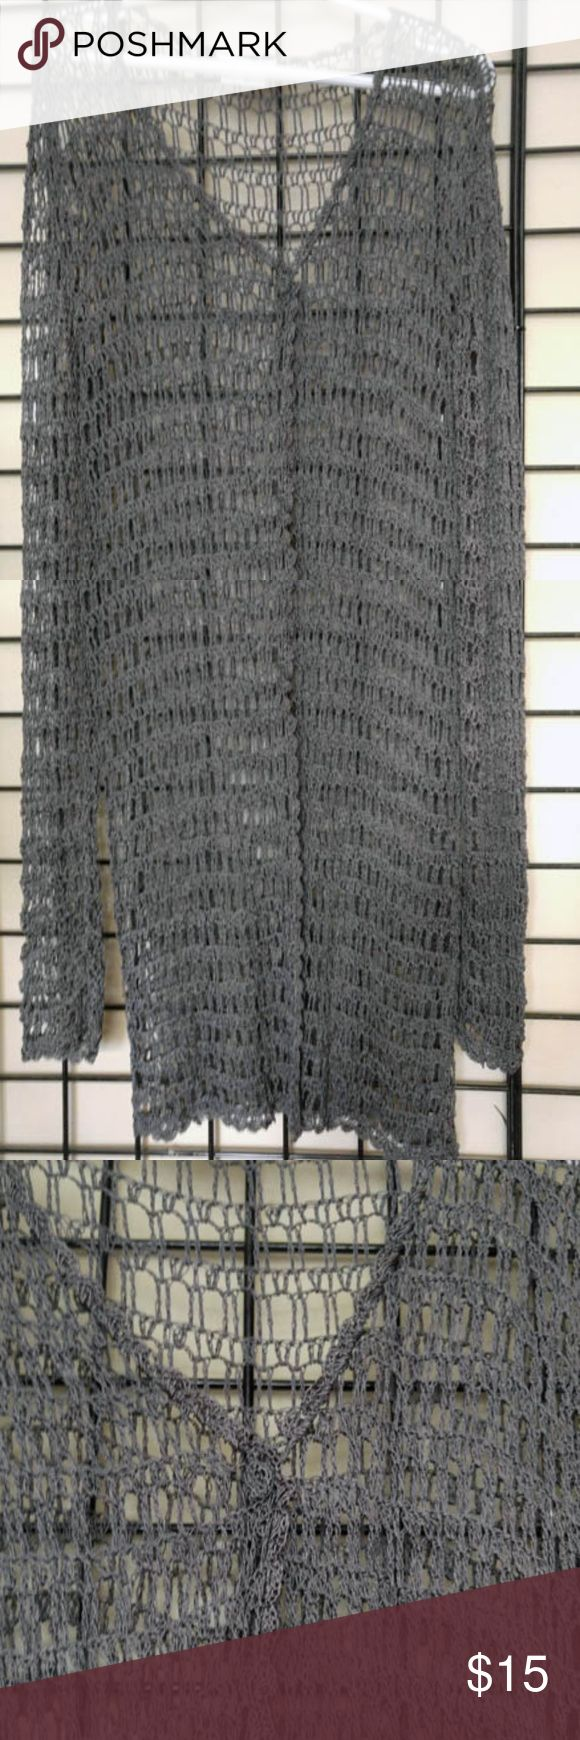 Open Work Crochet Silver Cardigan Beautiful Gunmetal Silver cardigan. Looks great with skirts, pants or over a sleeveless dress. Long sleeve, single button closure. Excellent condition. Sweaters Cardigans